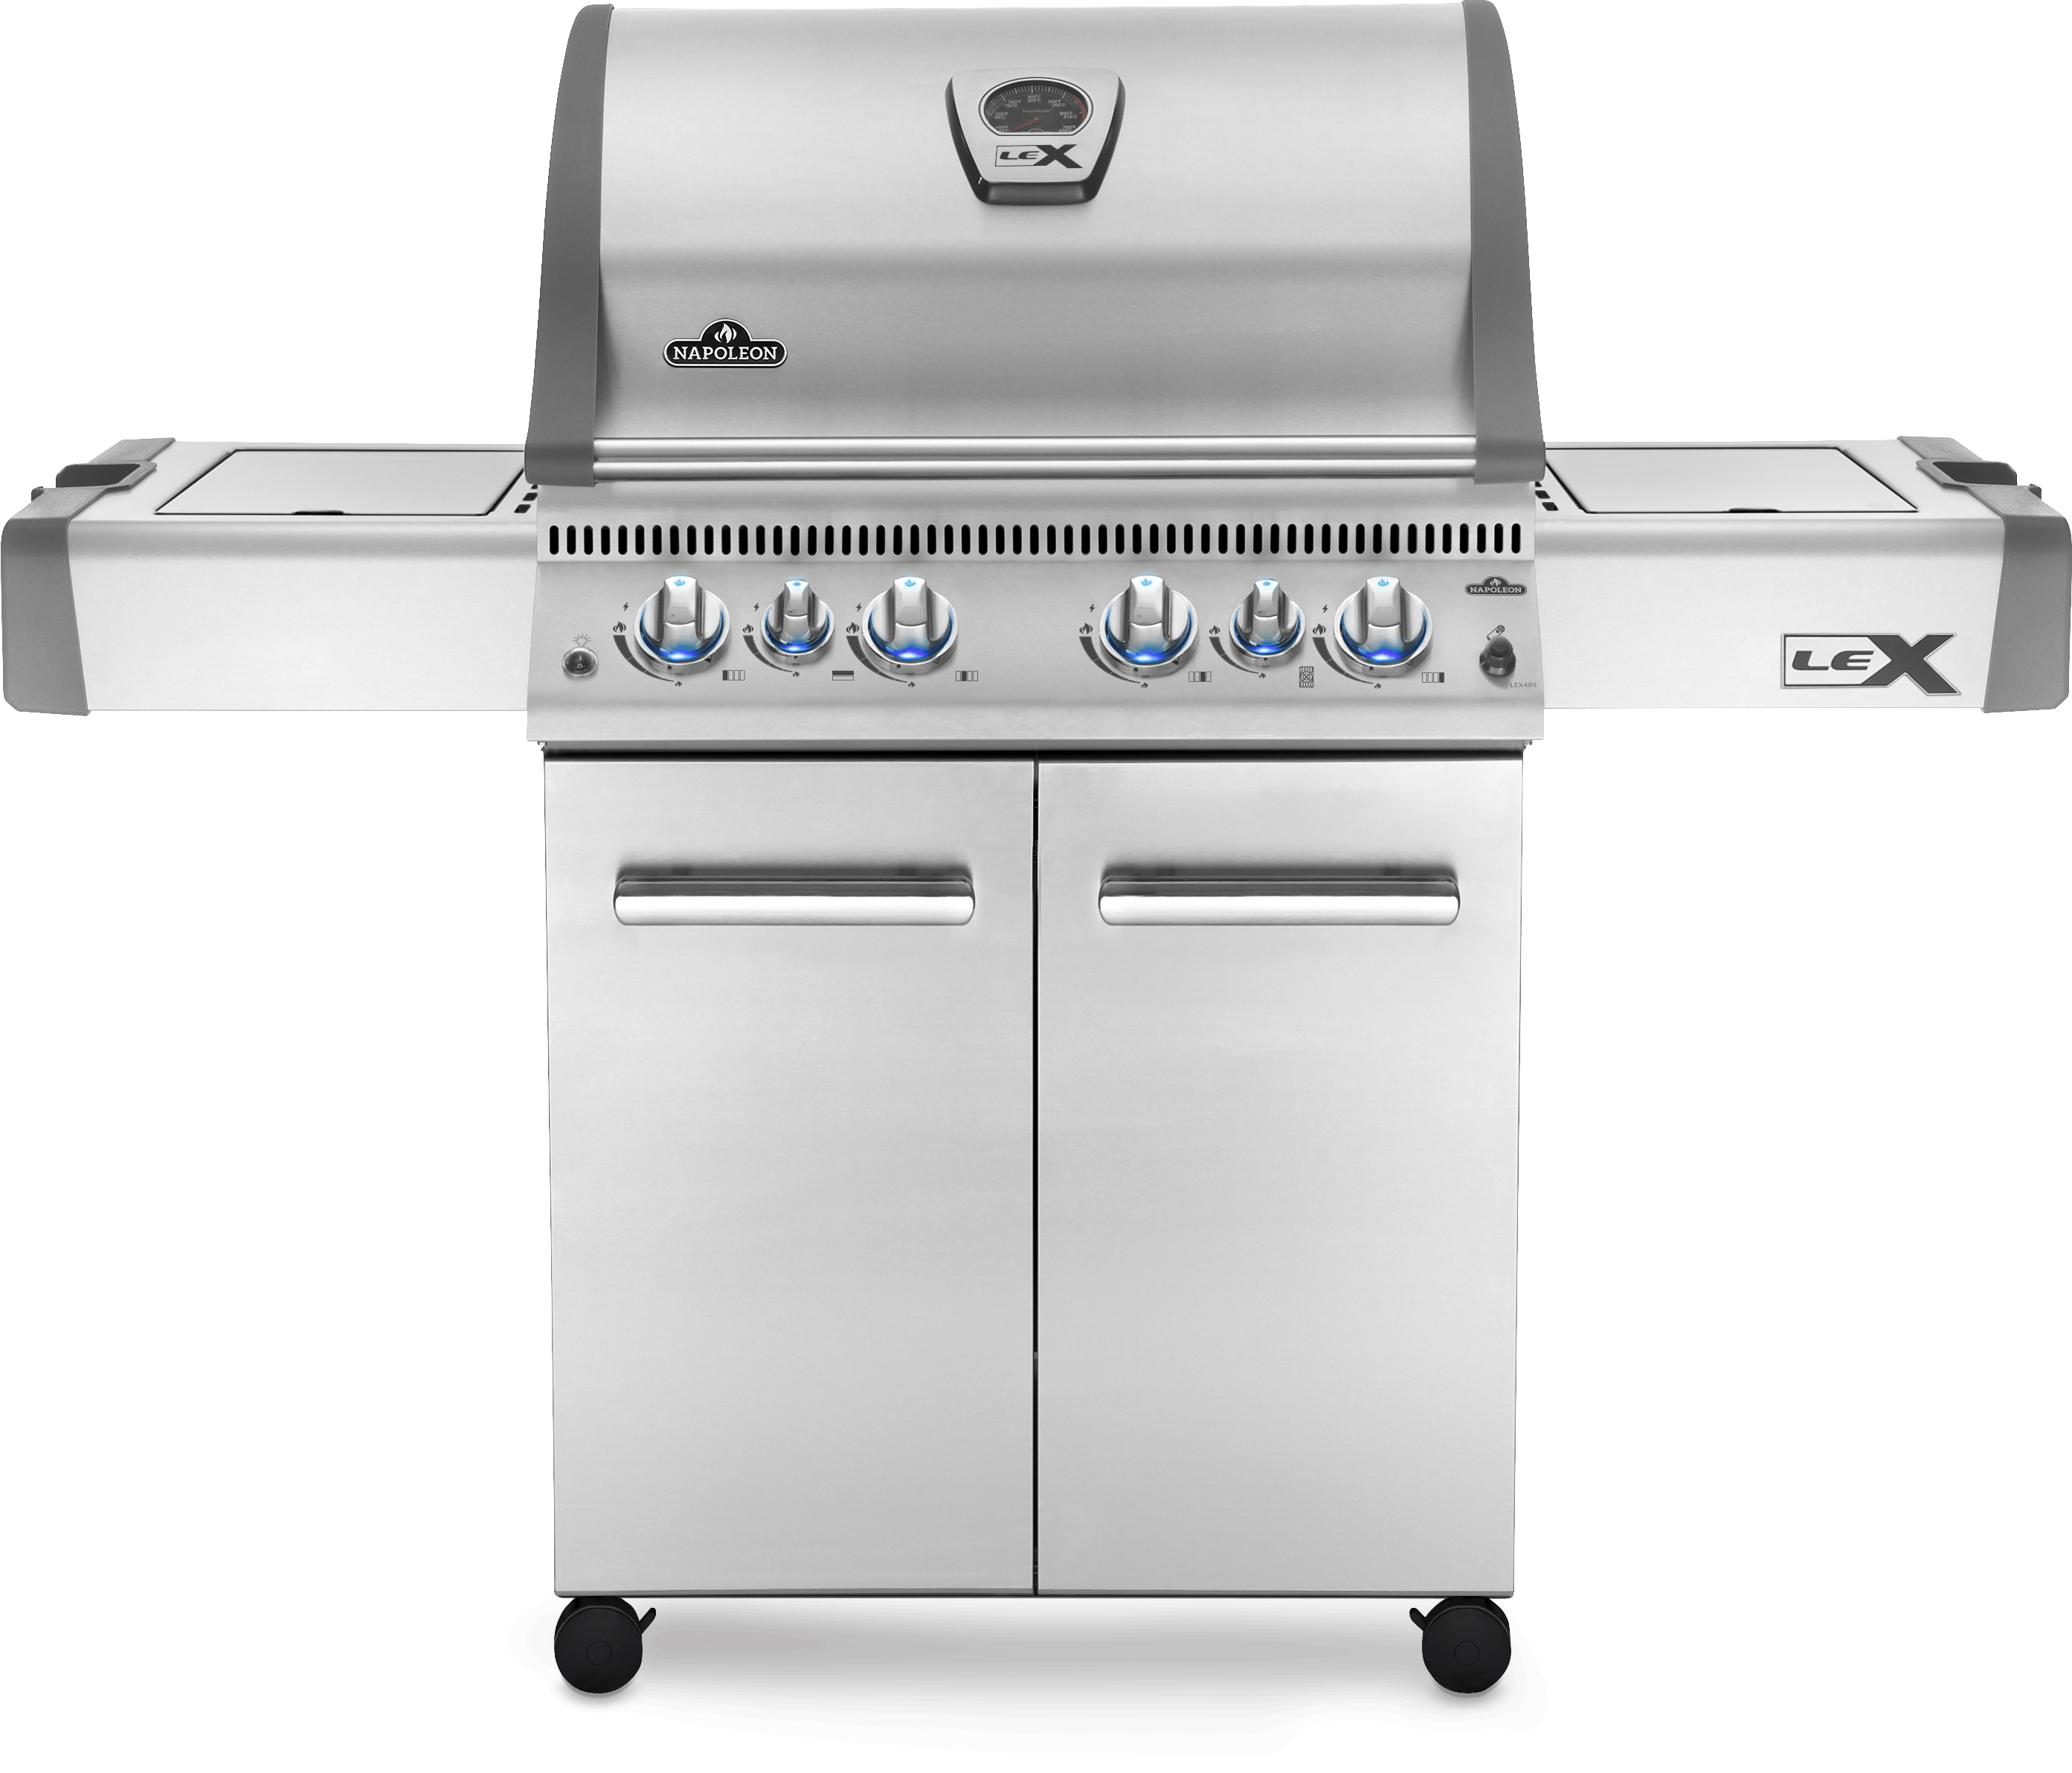 Model: LEX485RSIBPSS-1 | Napoleon LEX 485 Propane Gas Grill with Infrared Side and Rear Burners, Stainless Steel